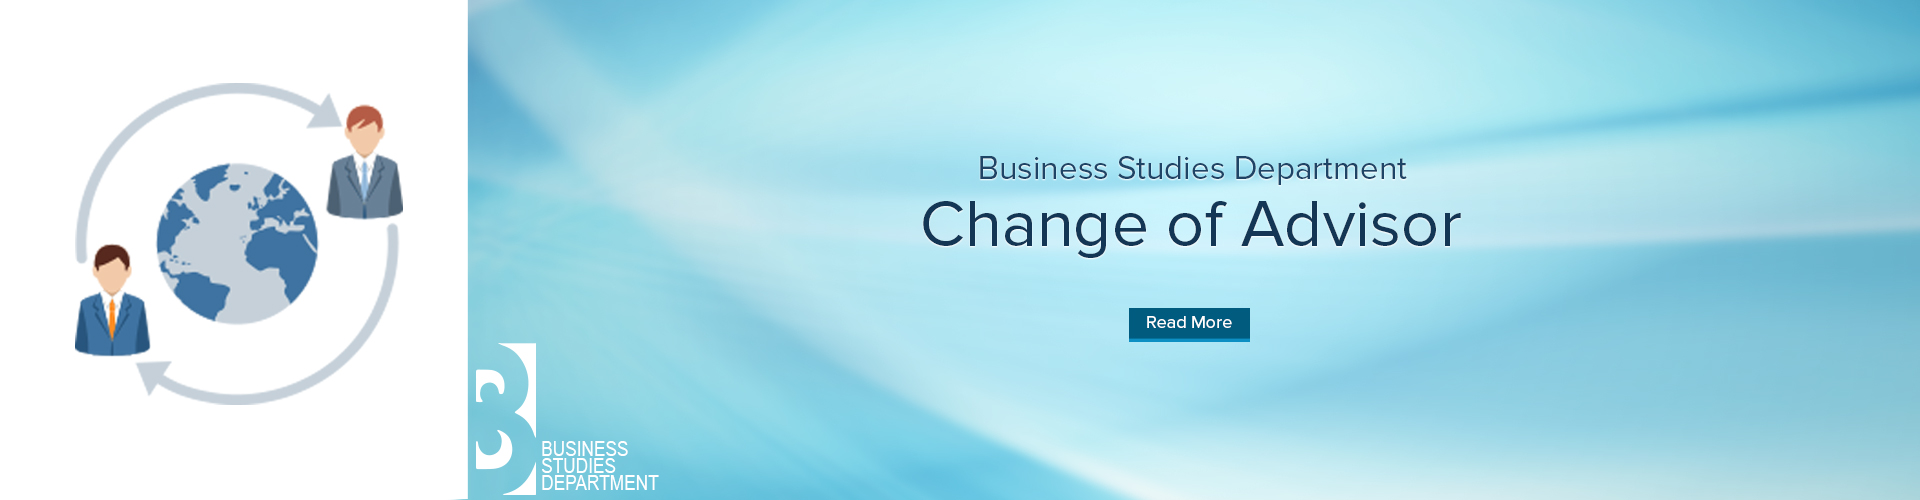 Business Studies Department - Change of advisor